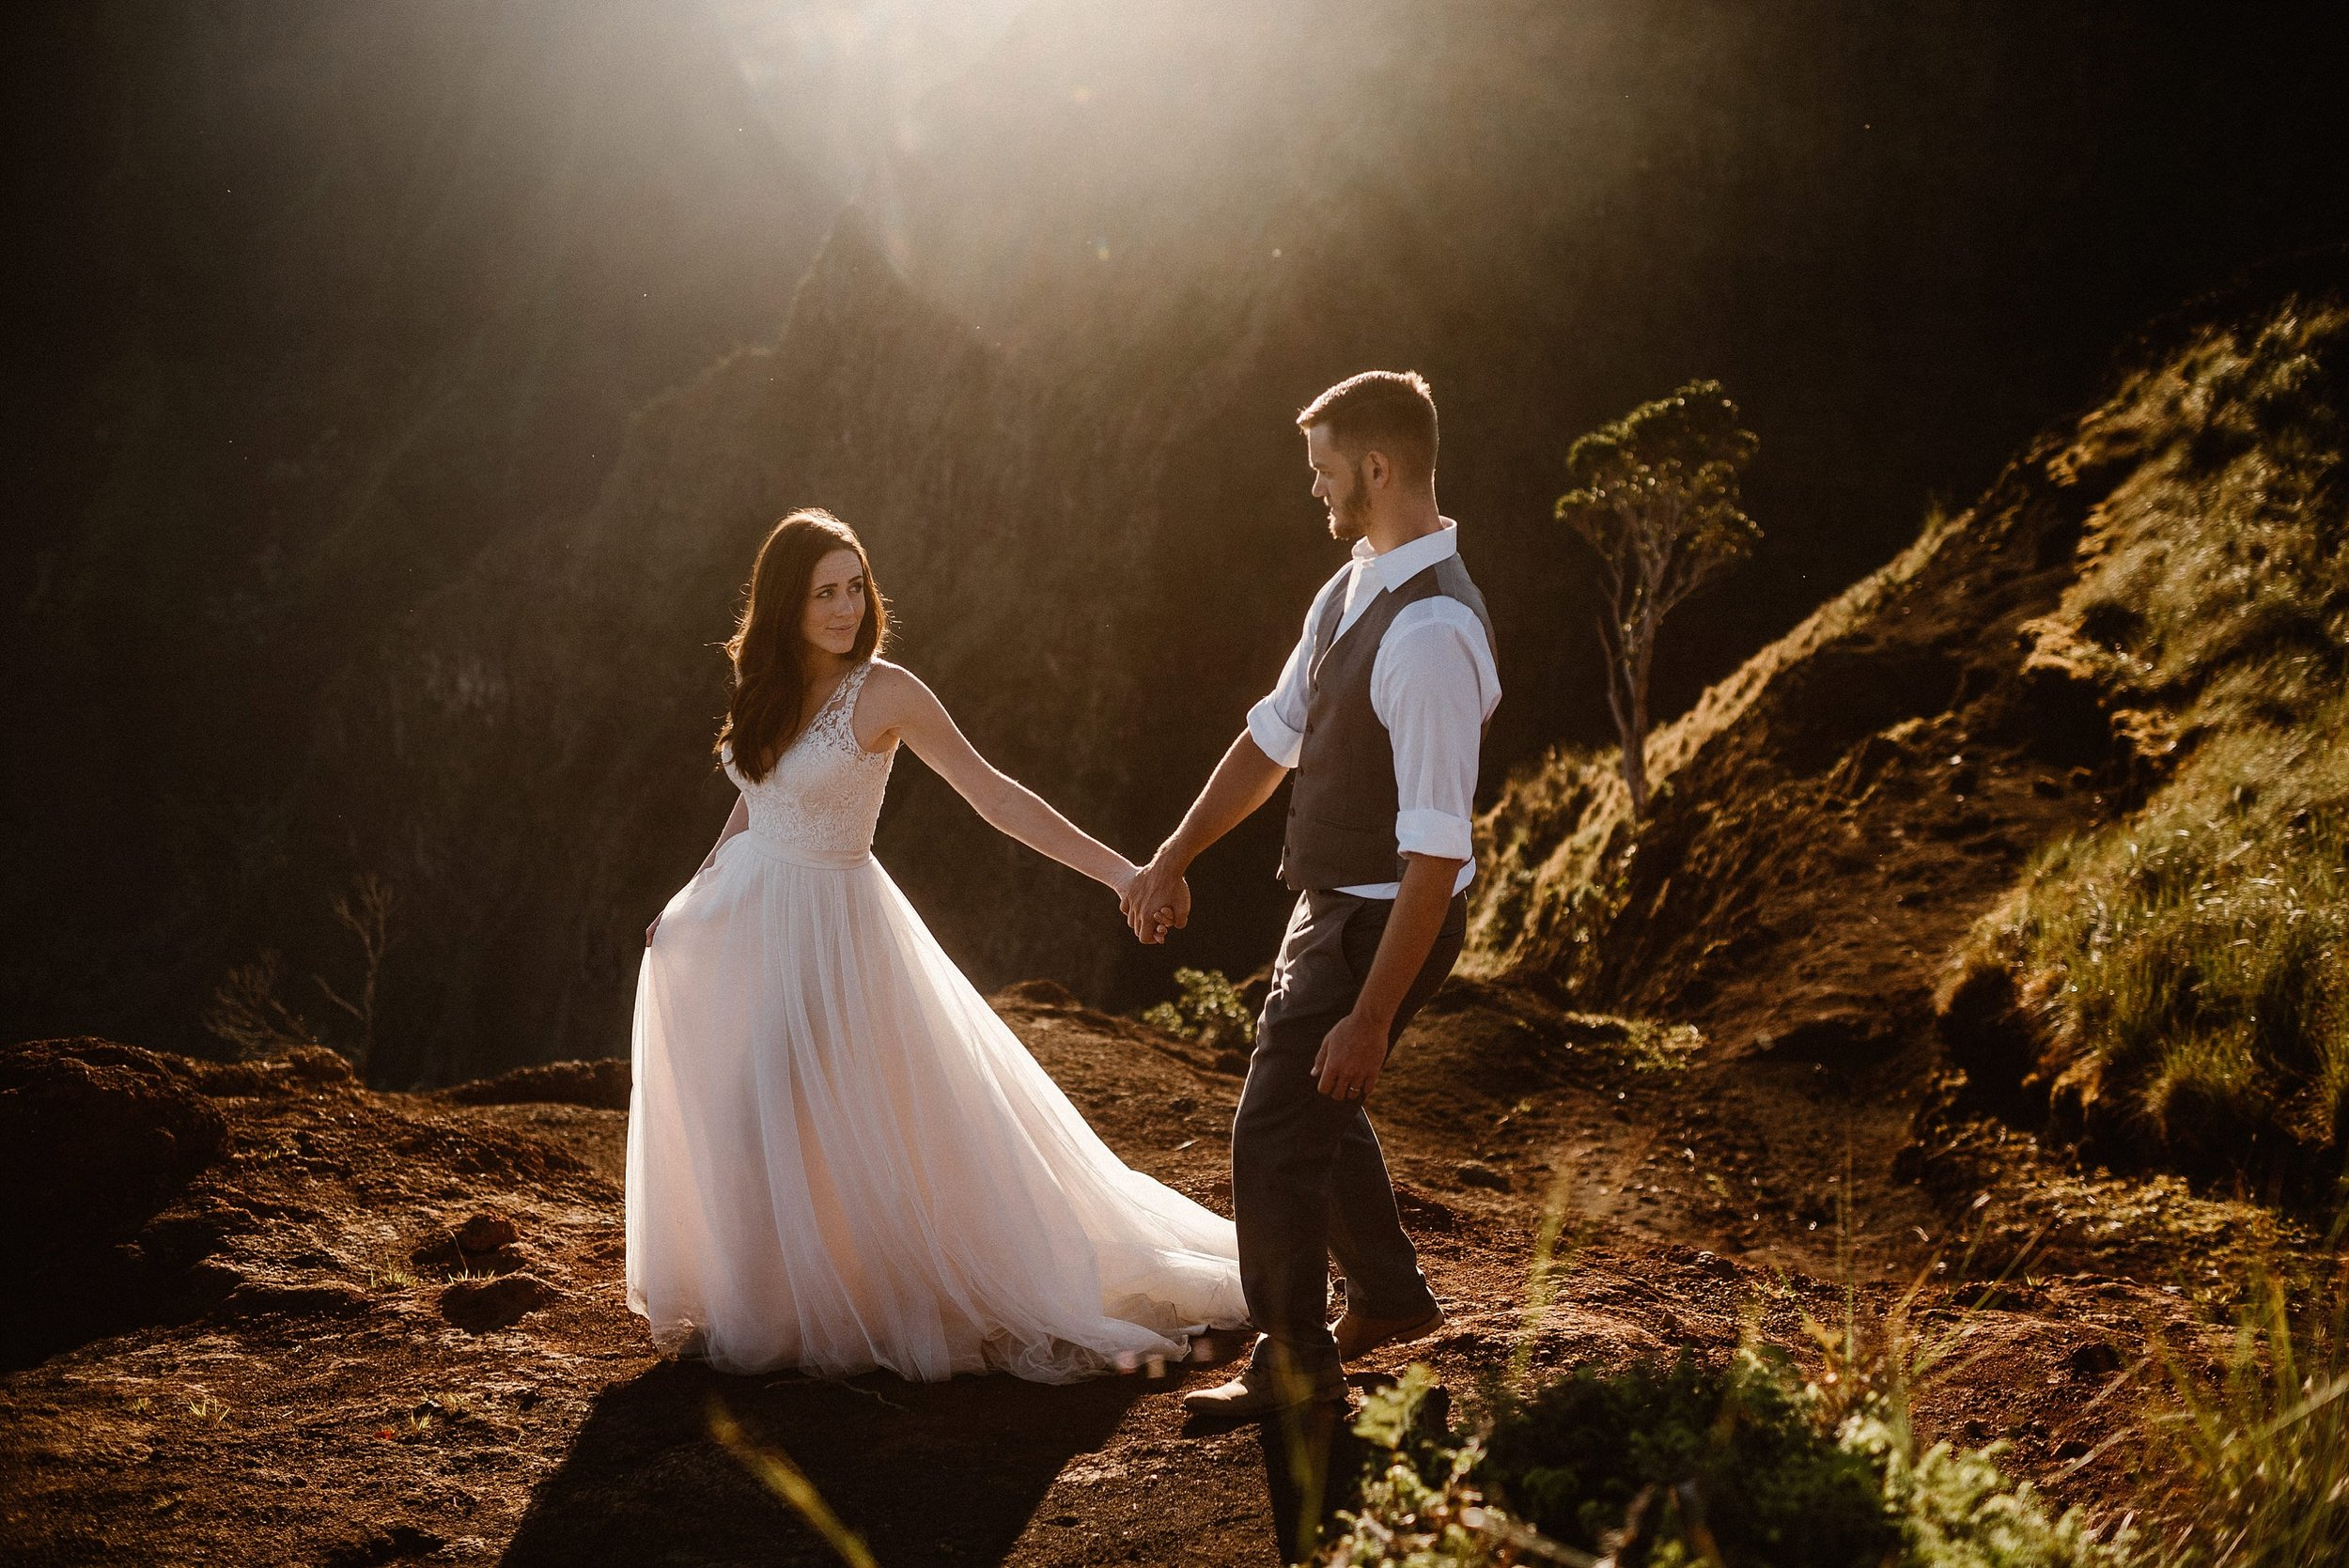 With the Hawaiian sun behind them, causing them to glow Kourtney and Chris hiked down the Kalepa Ridge Trail in Kauai to a private location to say their intimate elopement vows privately with only their traveling adventure wedding photographer Maddie Mae as their witness.